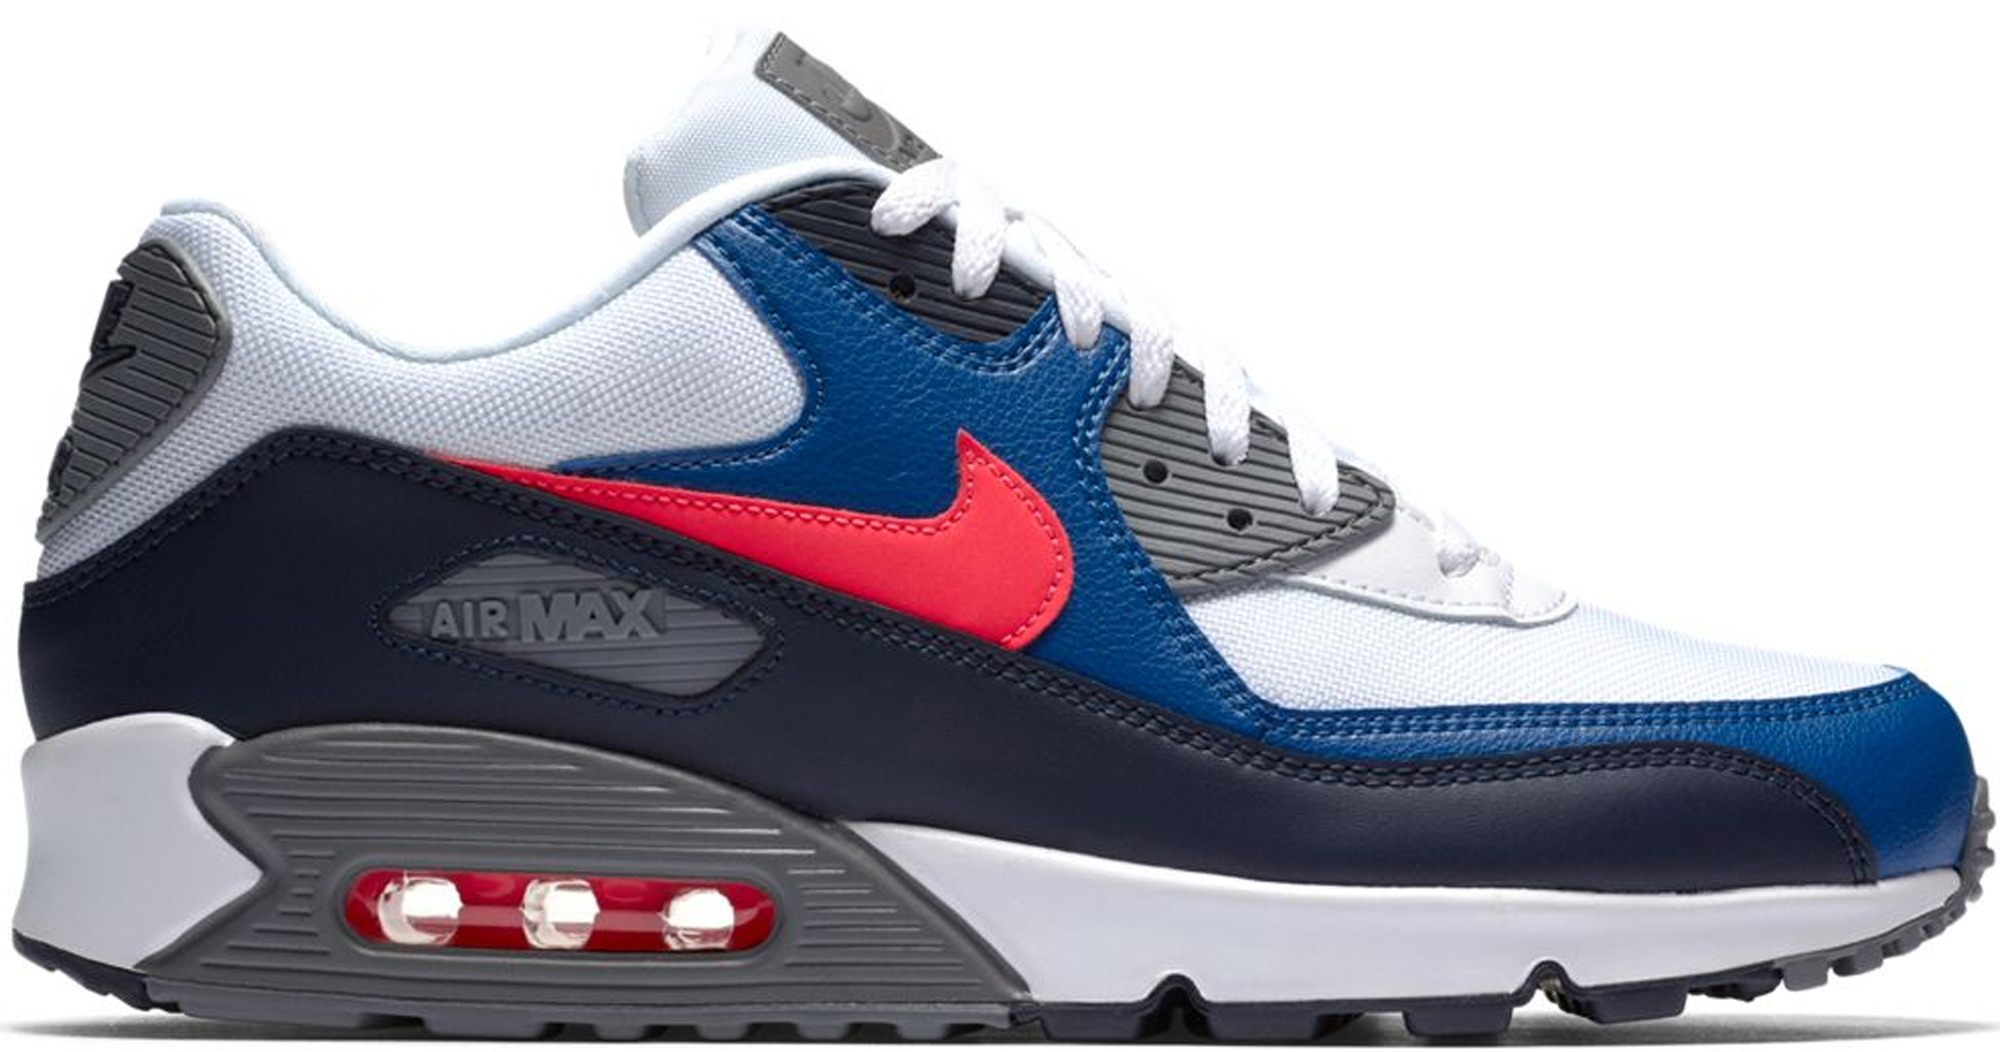 Nike Air Max 90 White Obsidian Red